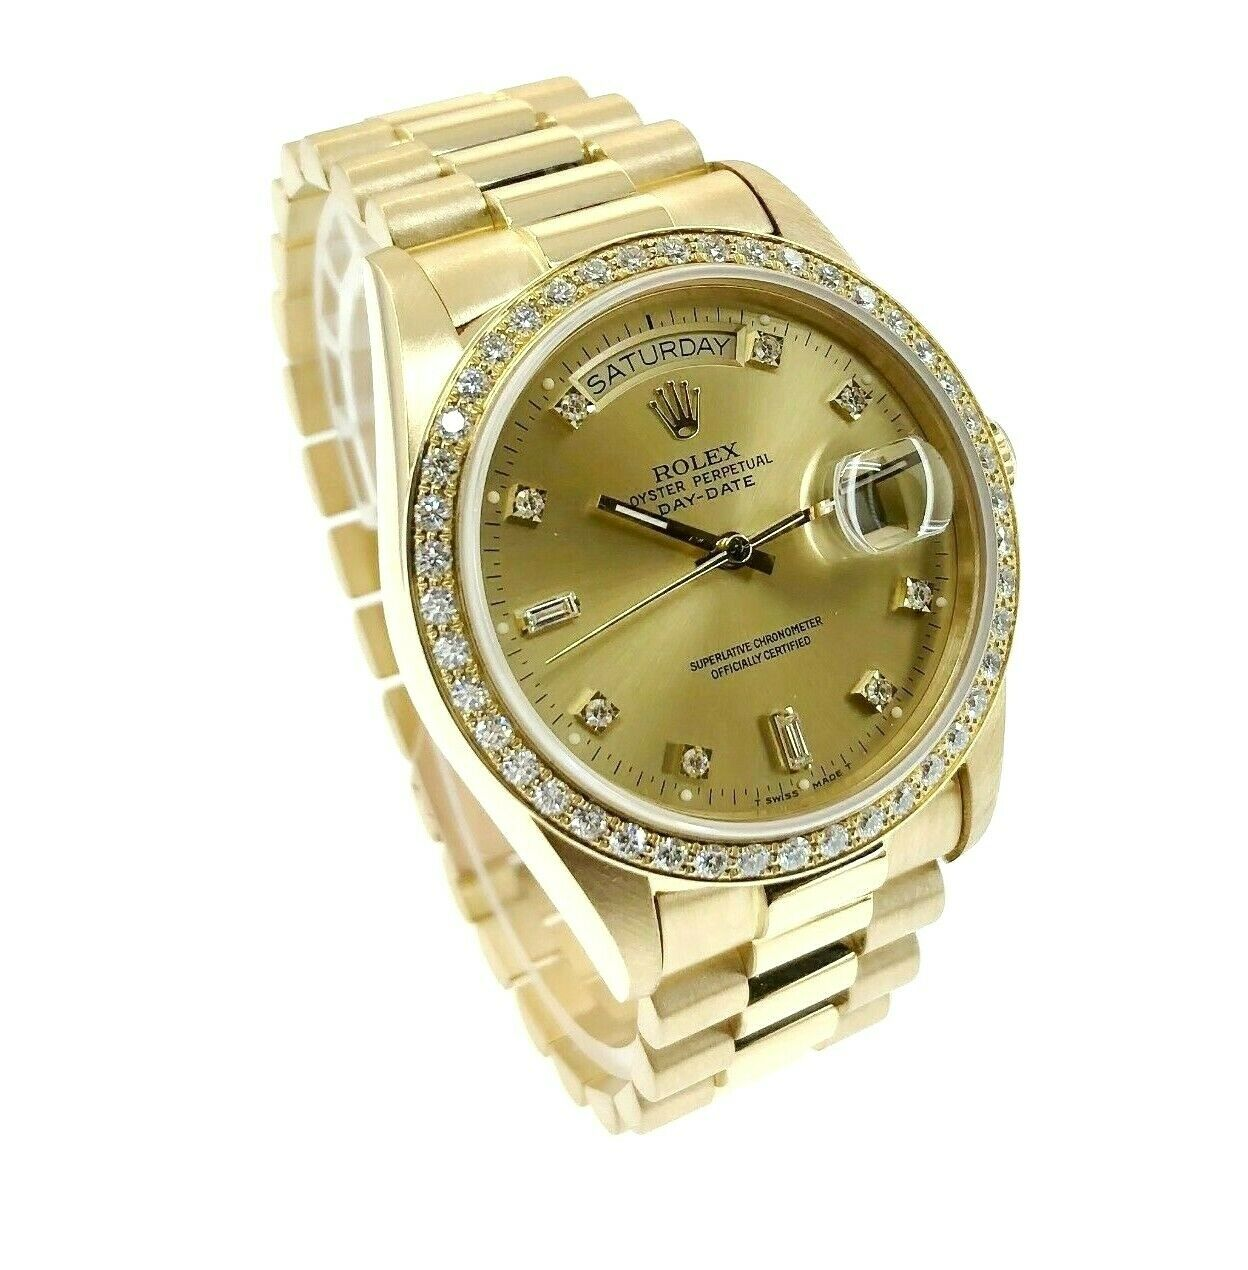 Rolex Day Date President 18K Yellow Gold 36mm Watch 18038 Factory Dial and Bezel